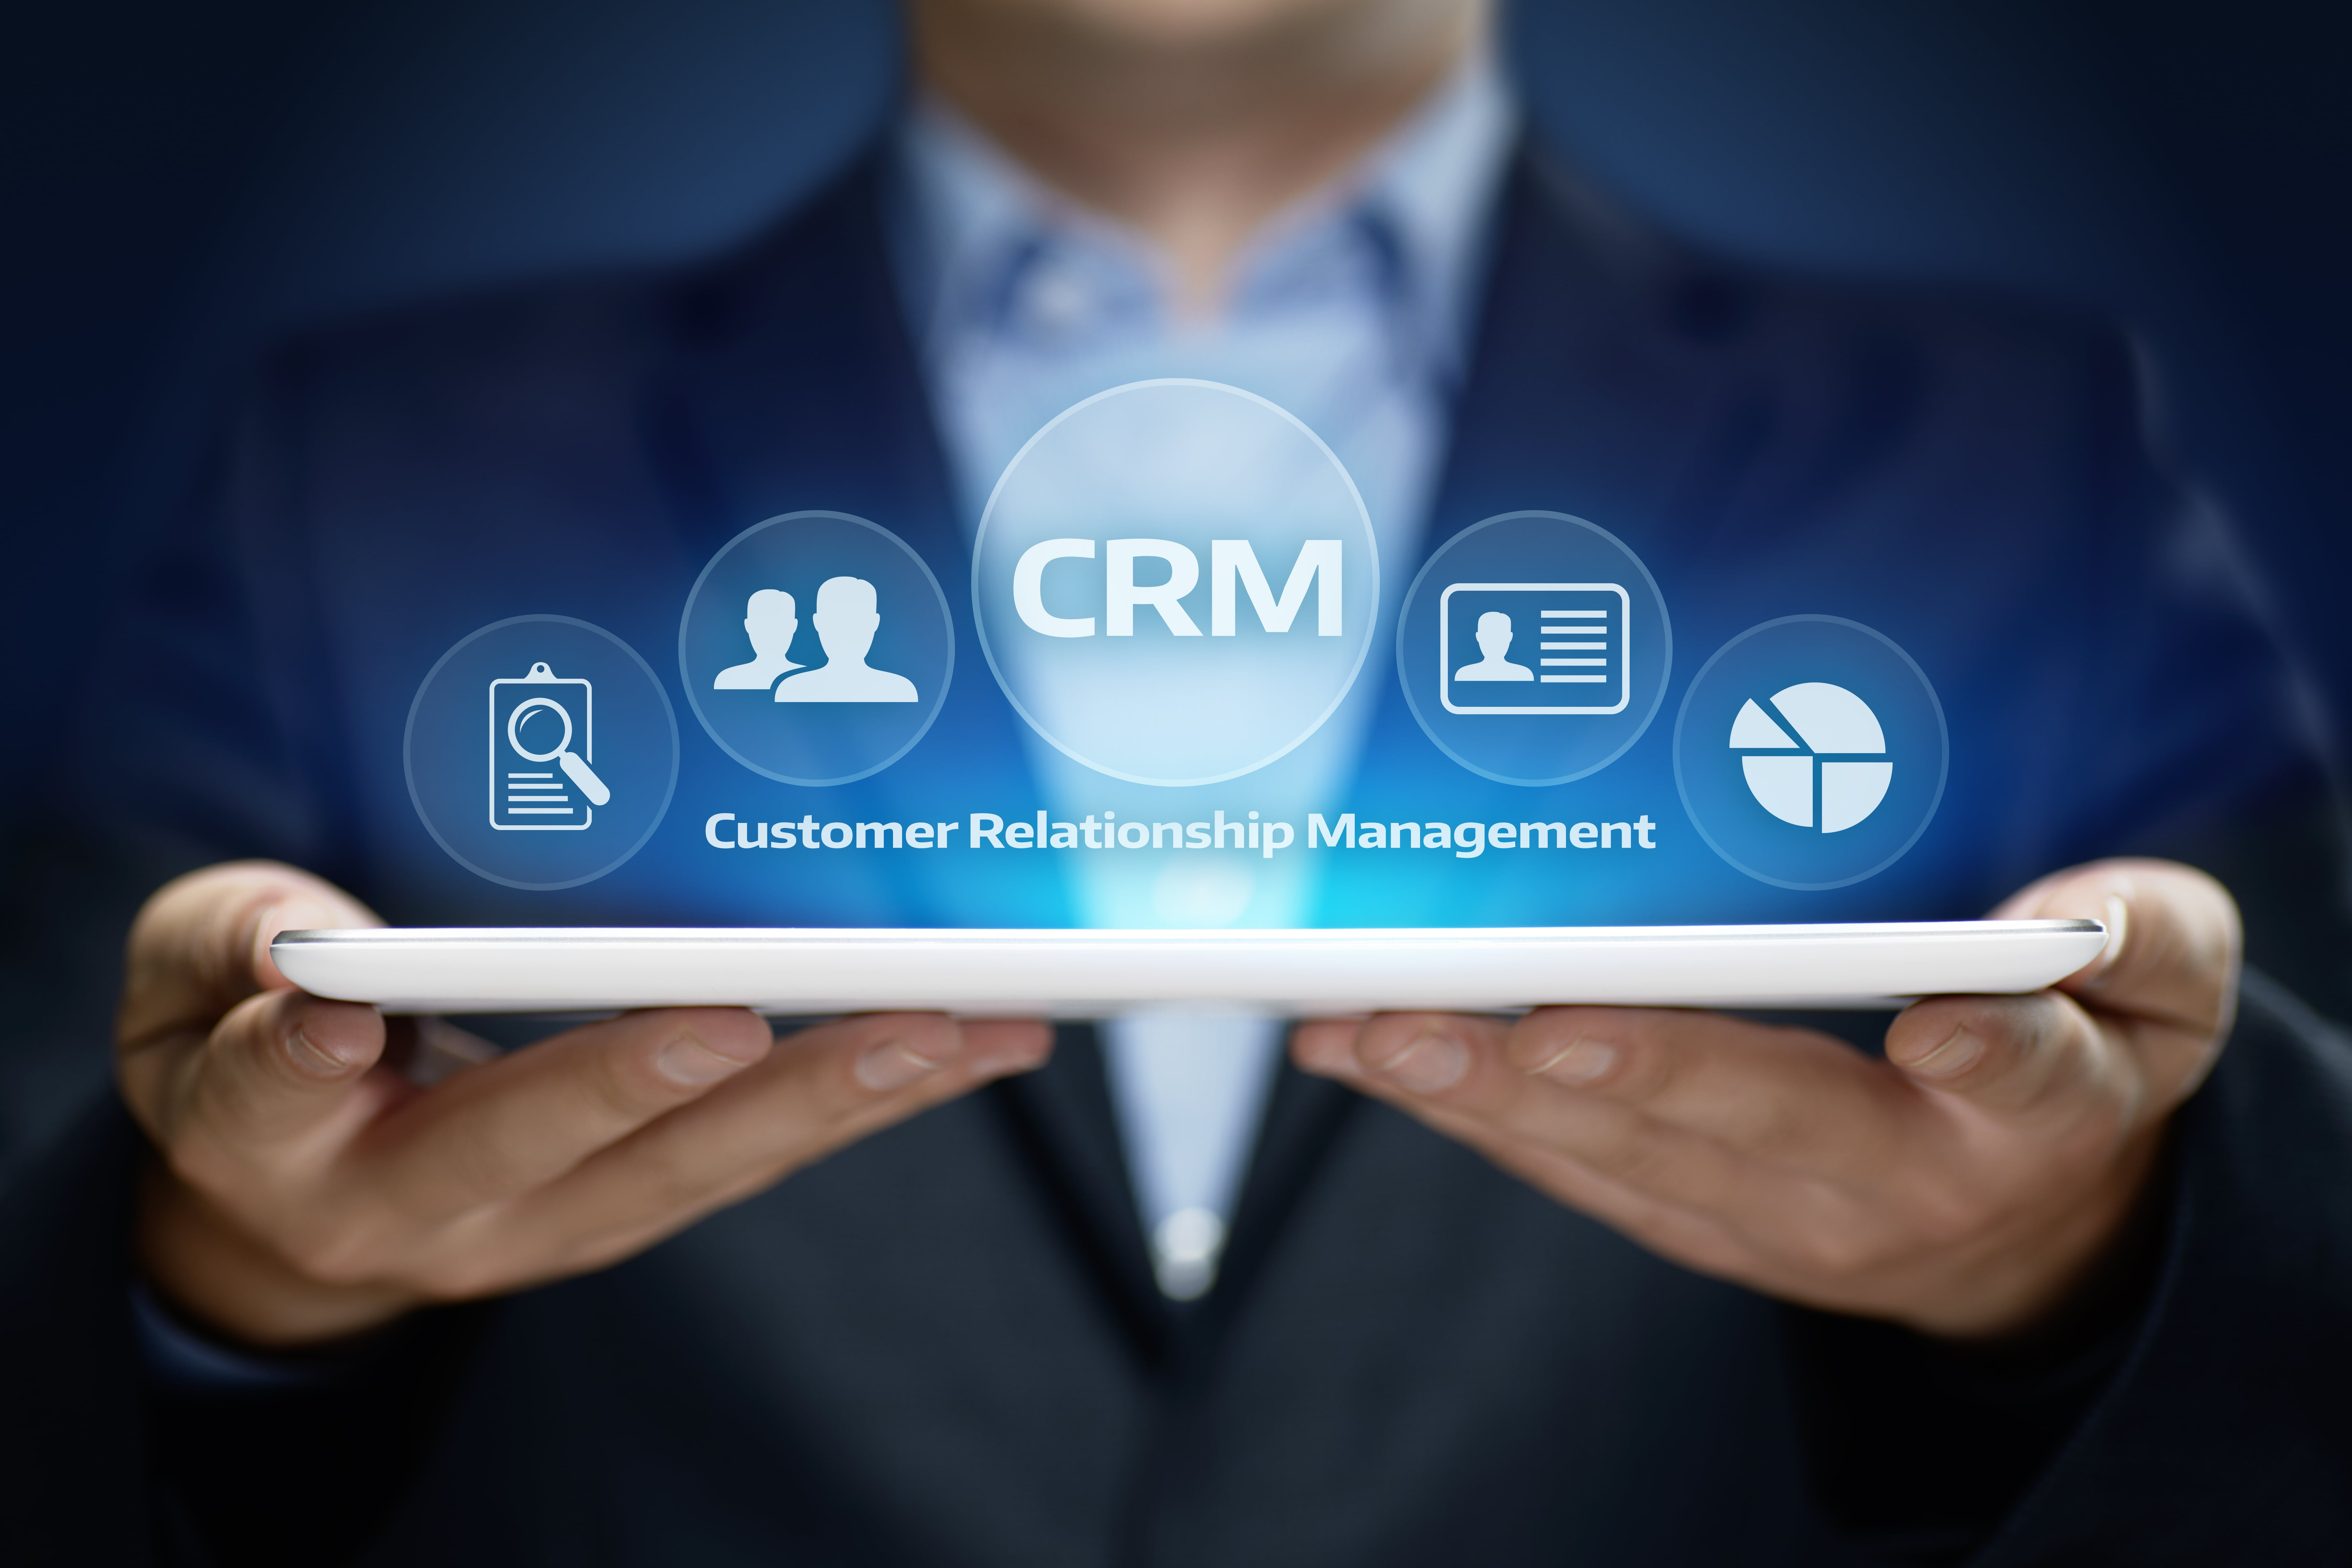 How CRM is Helping Businesses Grow